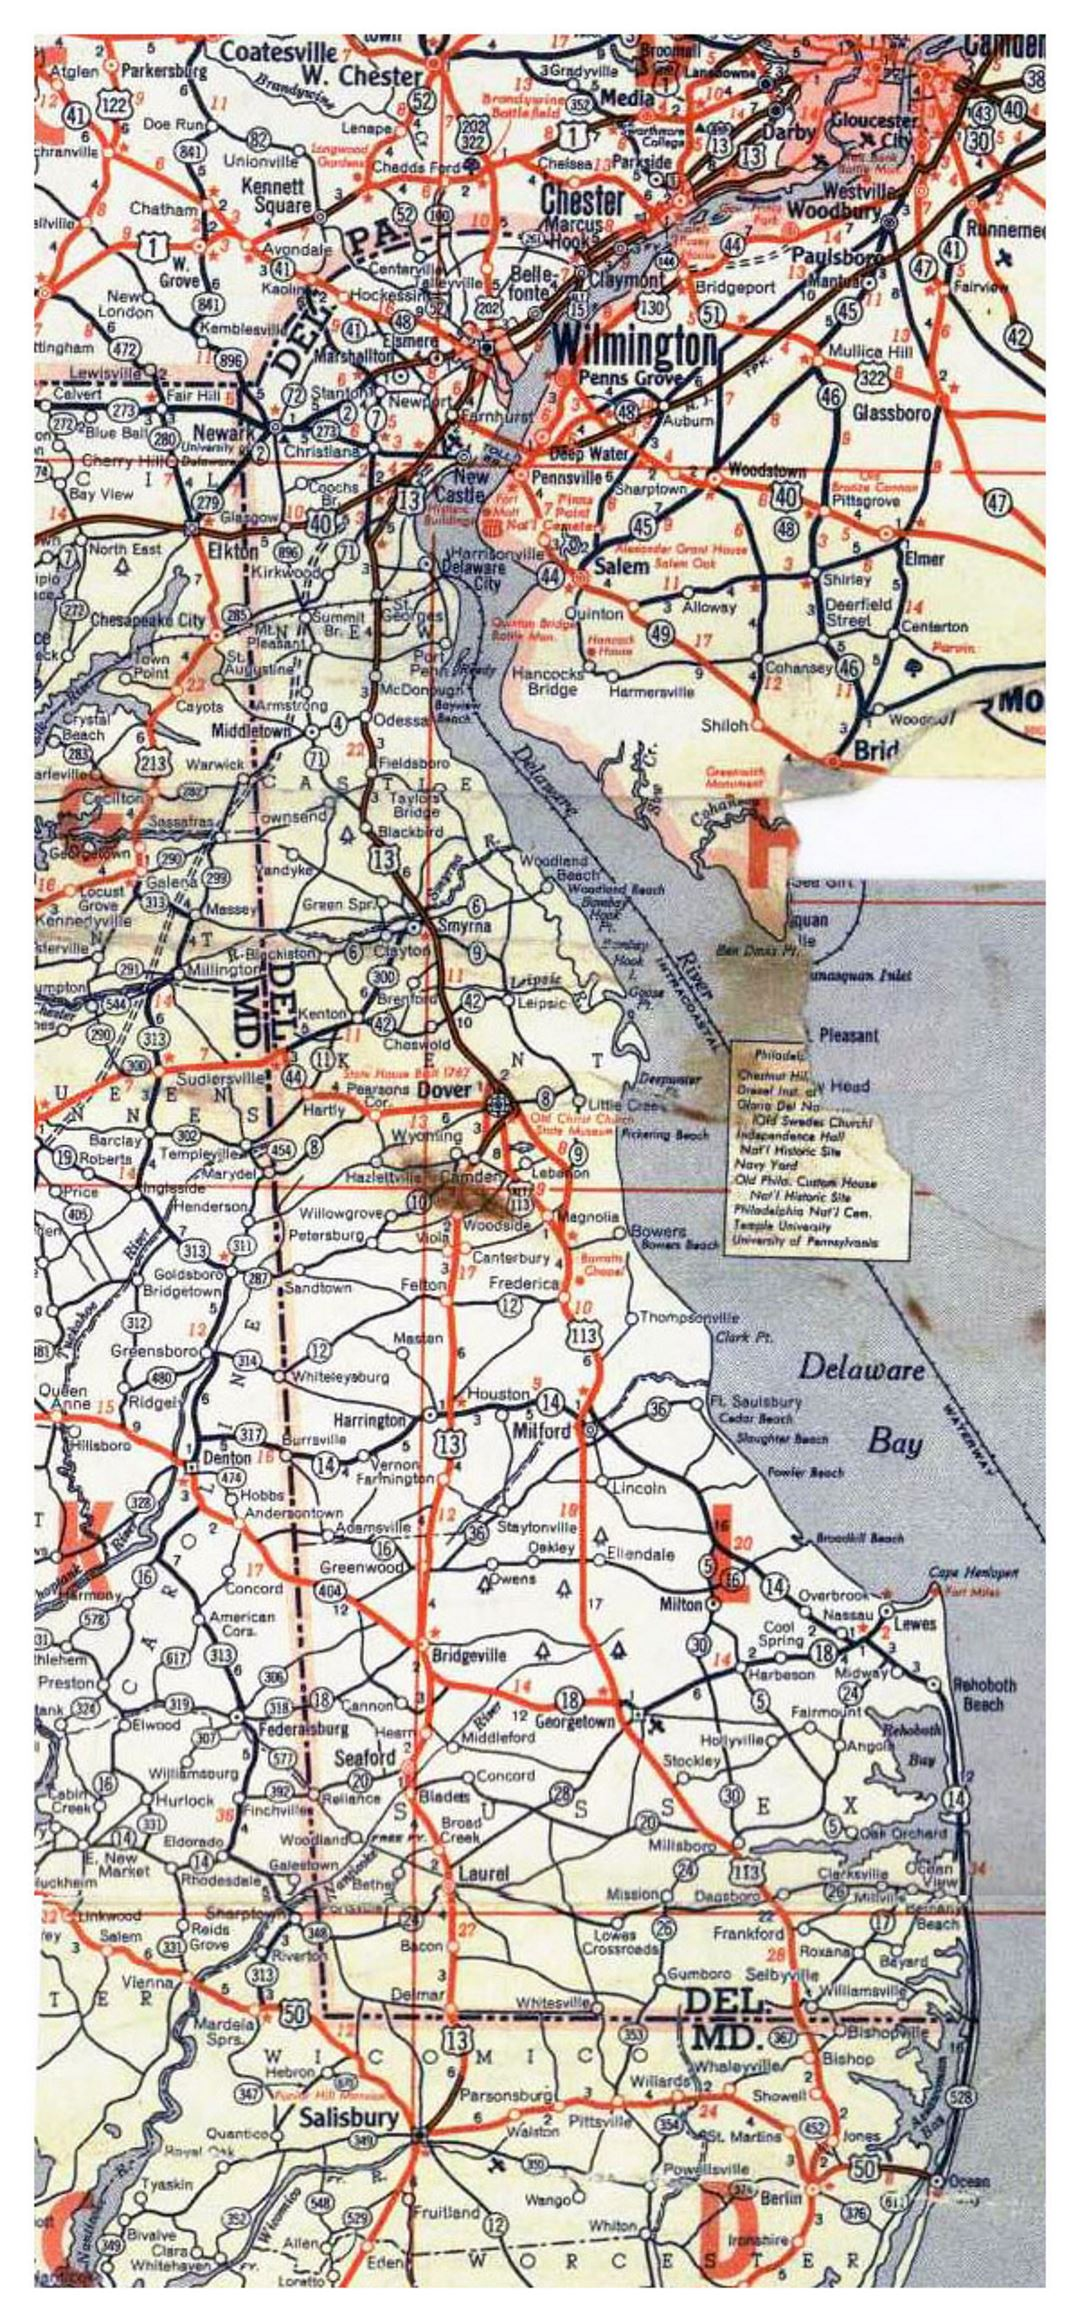 Roads and highways map of Delaware state - 1951